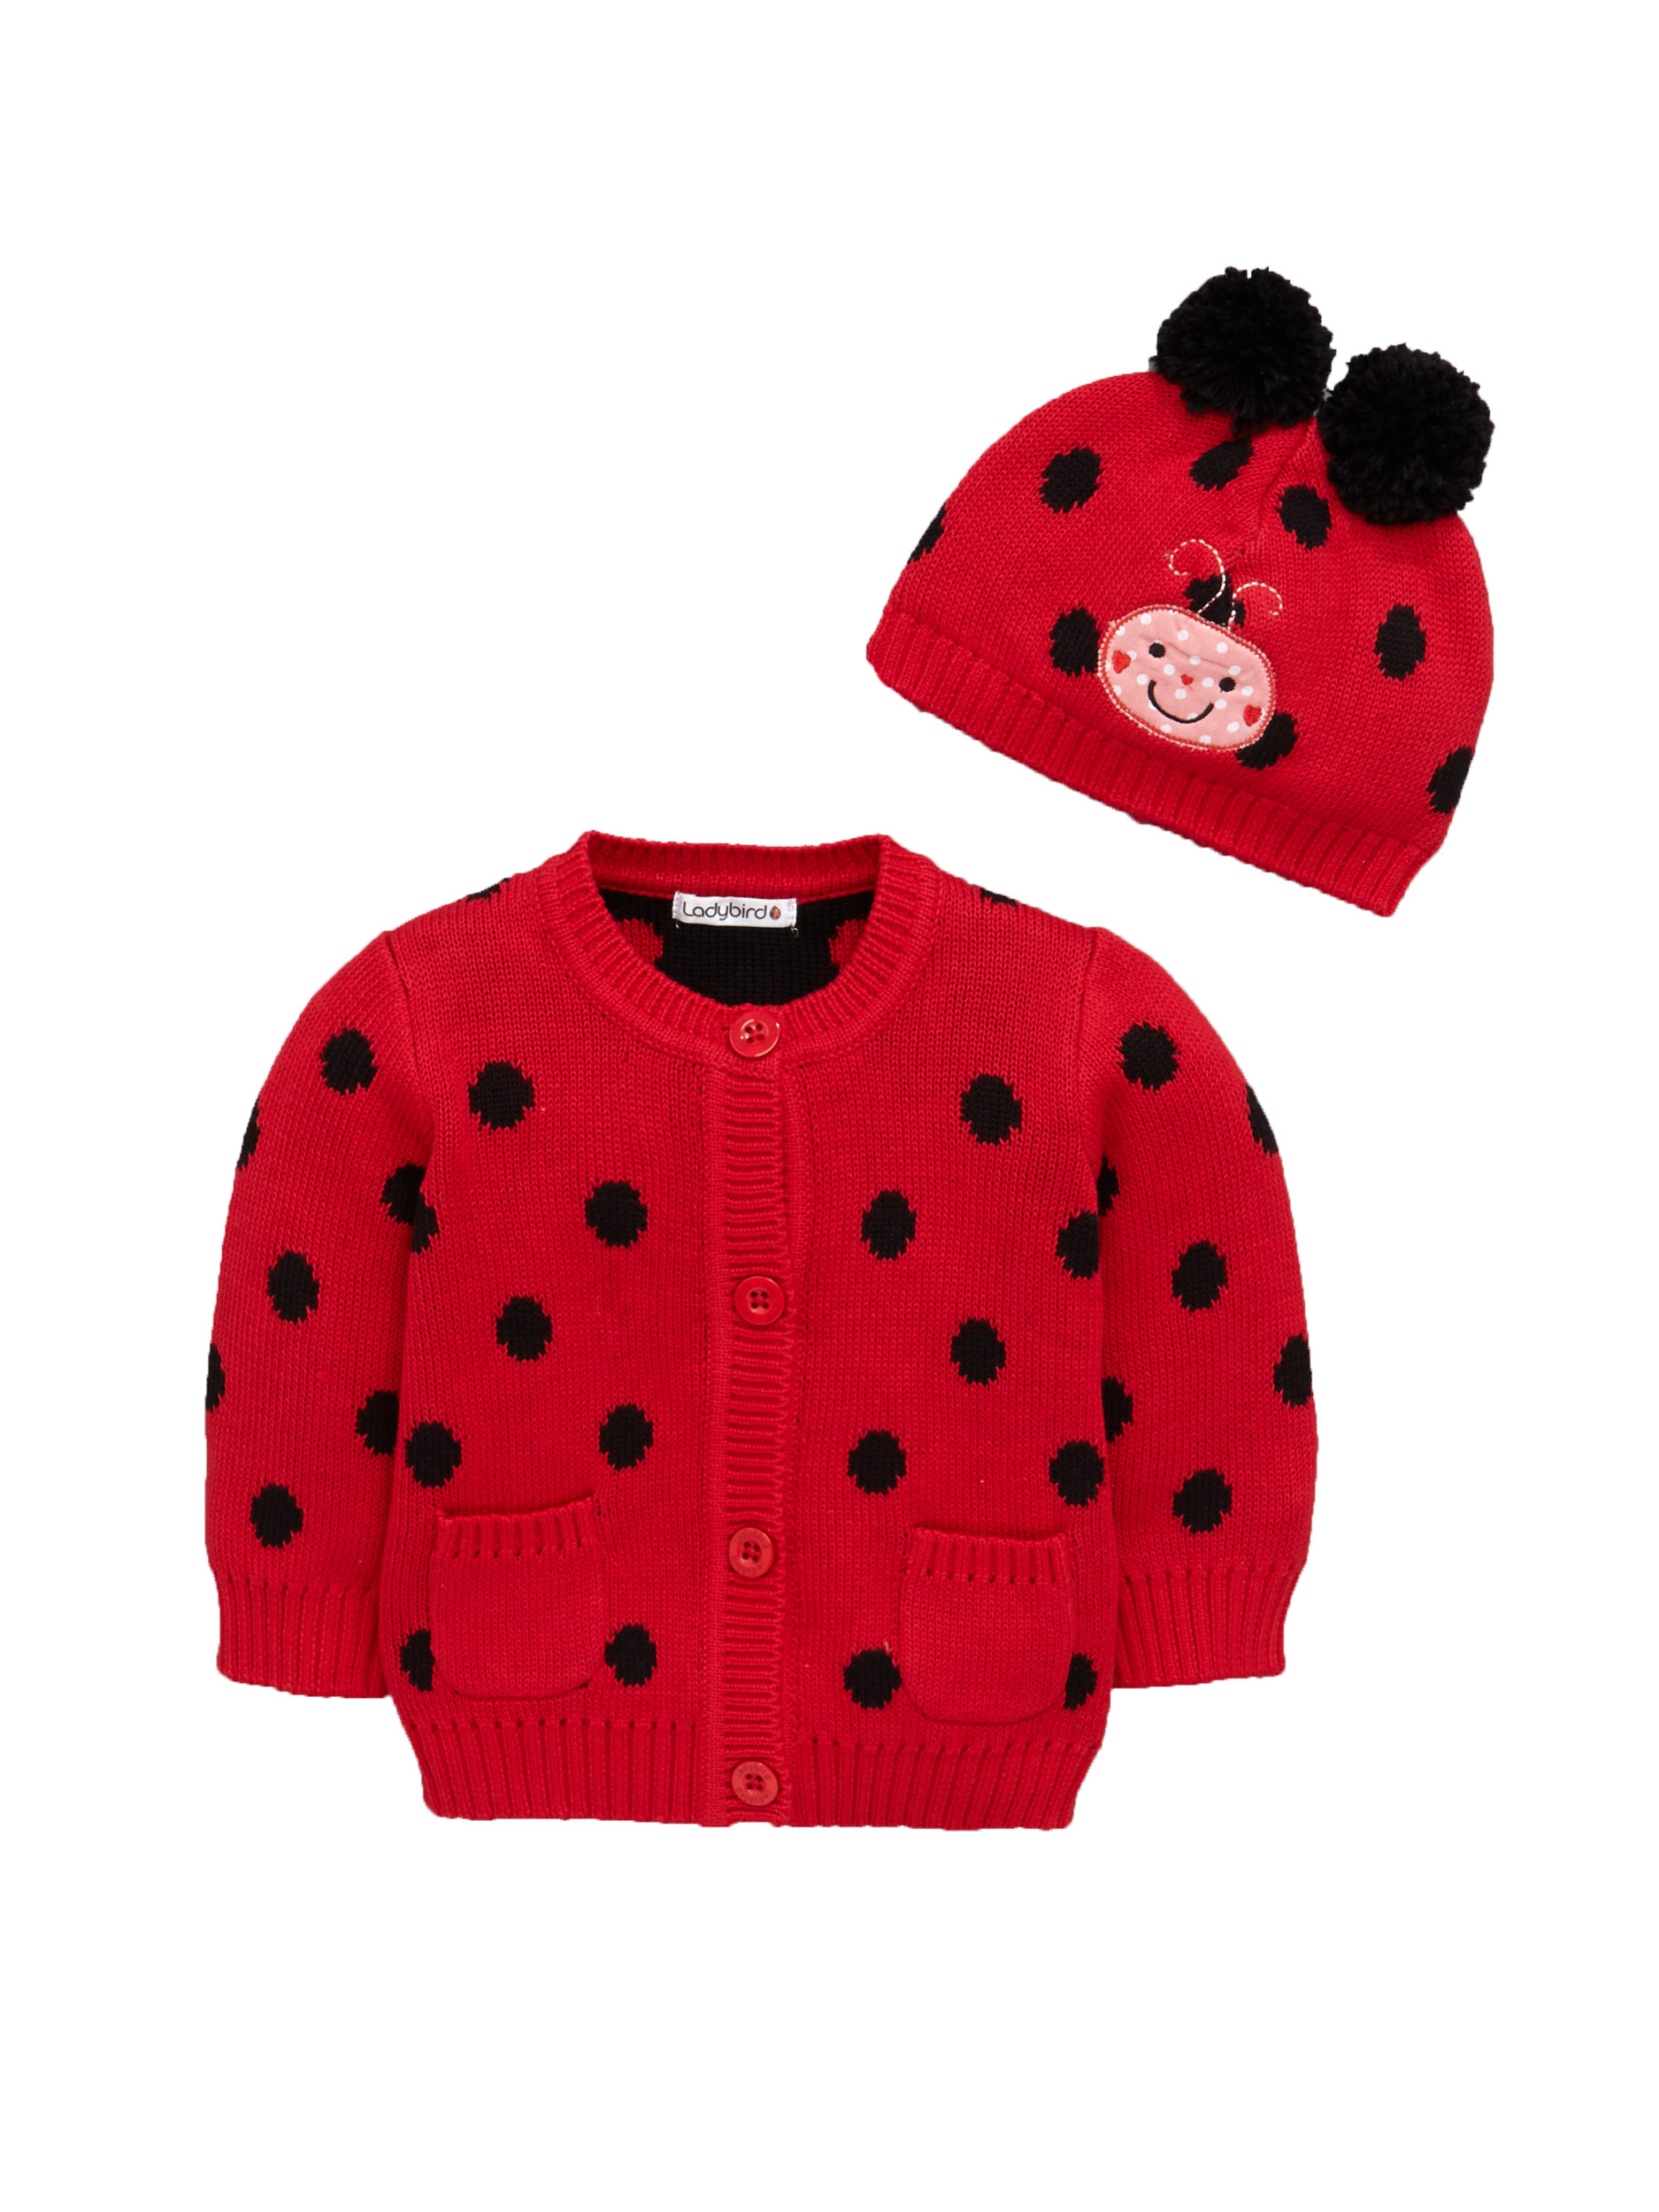 Ladybird Baby Girls Knitted Pom Pom Hat And Cardigan Set.